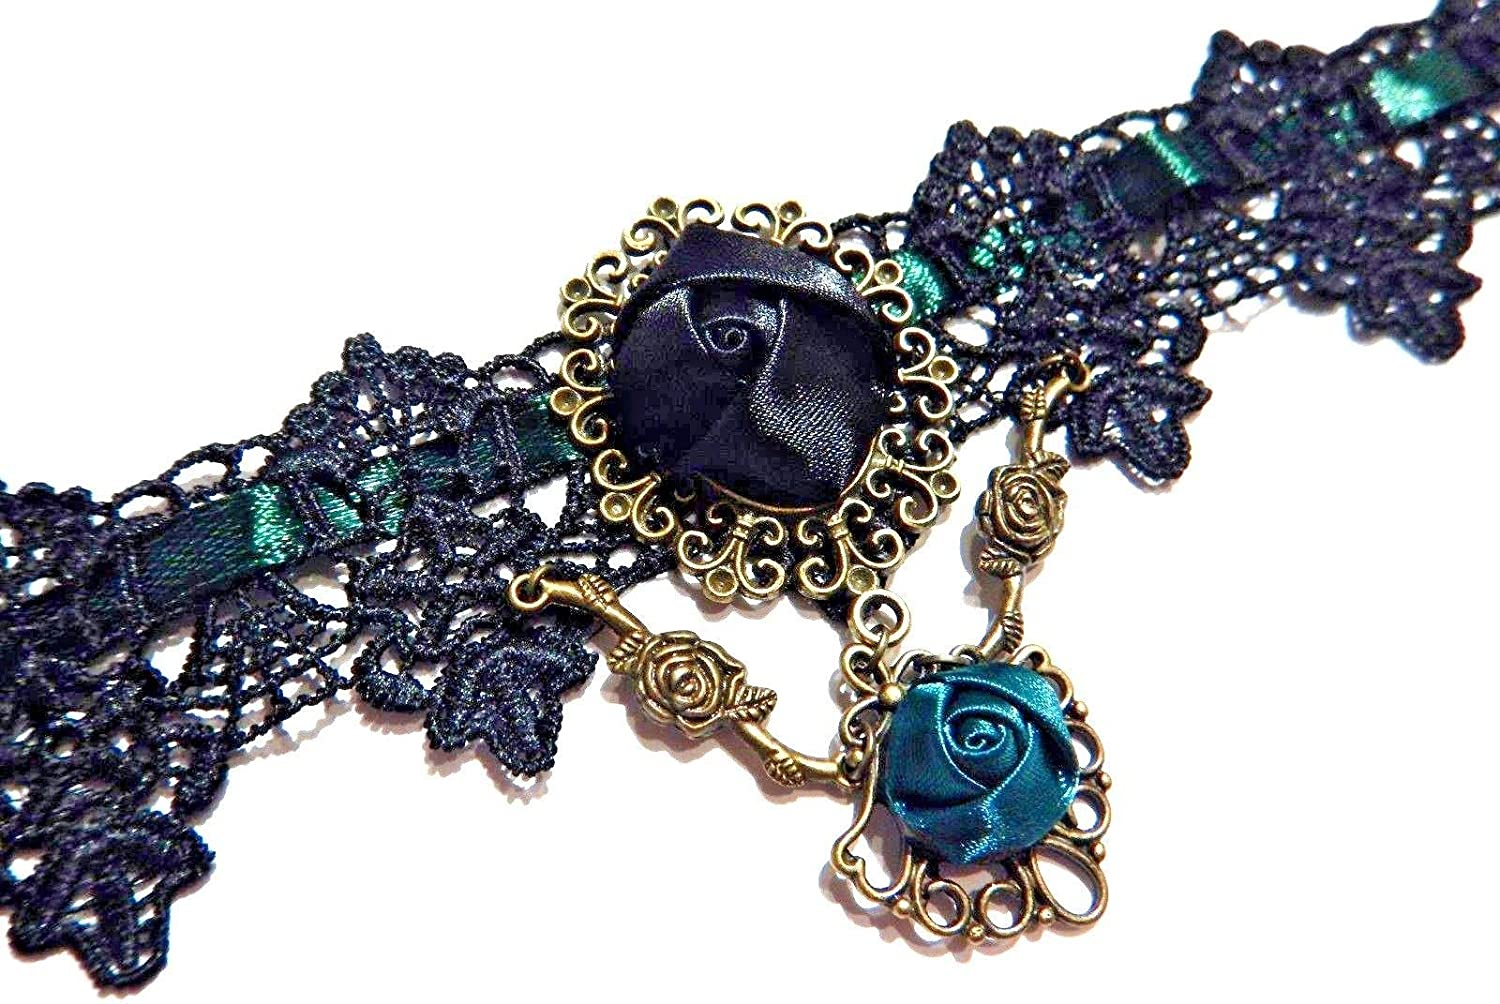 Green & Black Lace Rose Choker Necklace Teal Gothic Victorian Steampunk Collar